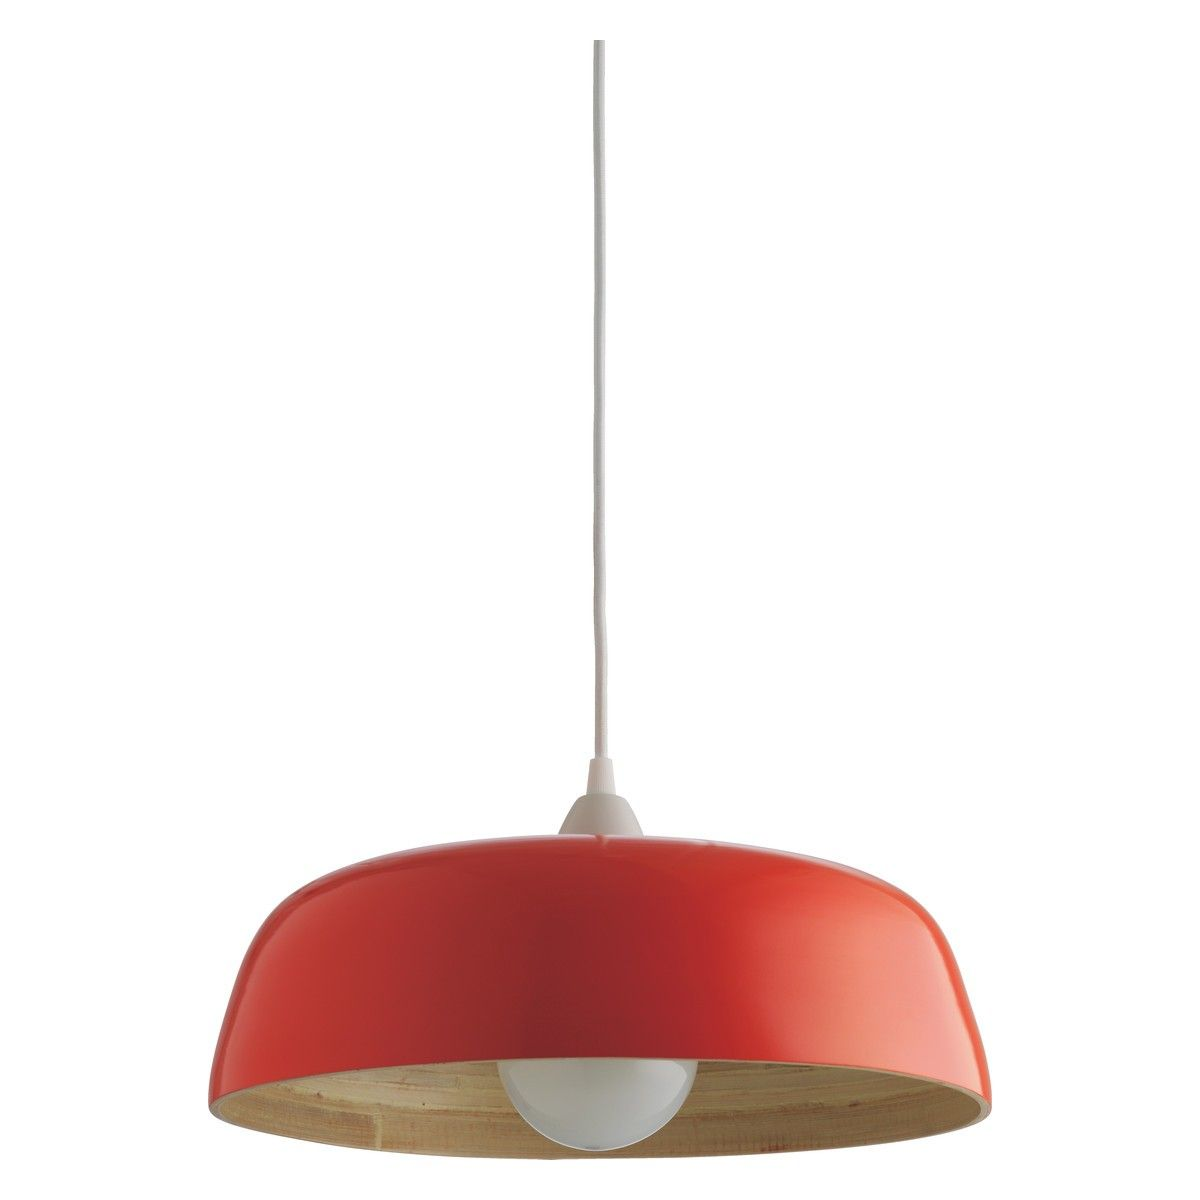 MOXLEY Orange Lacquered Spun Bamboo Ceiling Light Shade Buy Now At